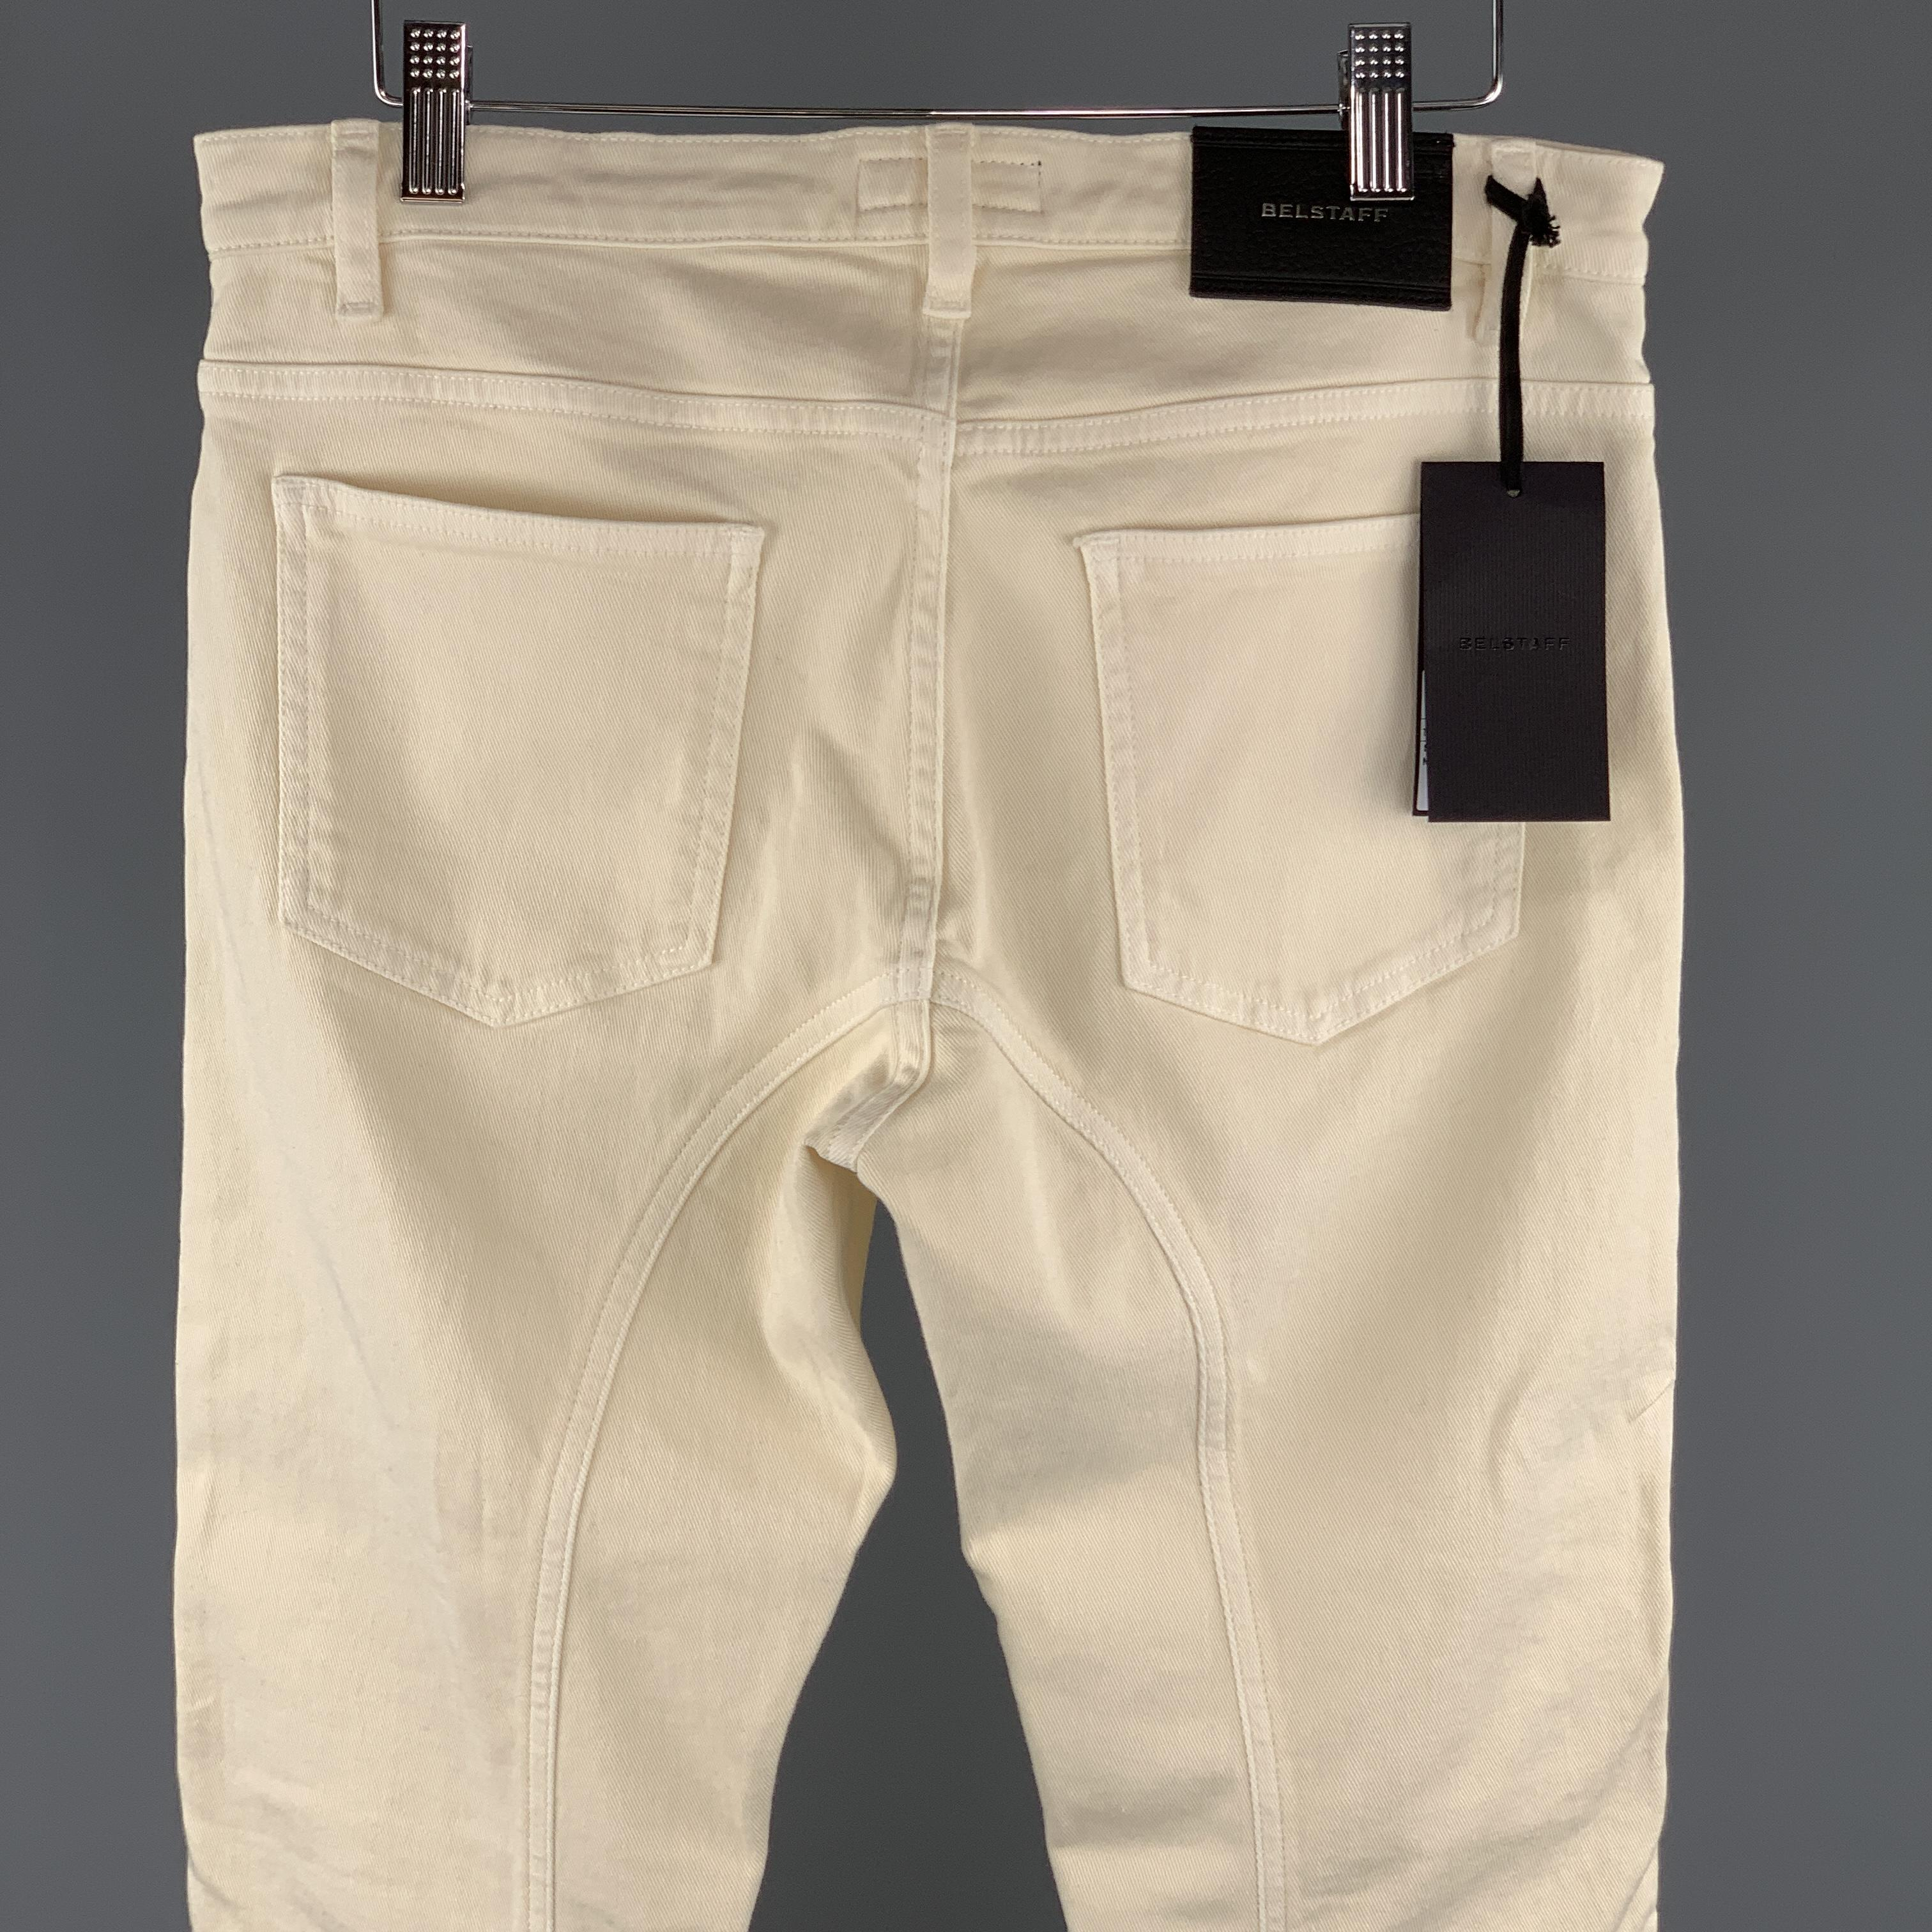 0e47873493f2 BELSTAFF Size 30 x 31 Beige Solid Cotton   Elastane Zip Fly Jeans For Sale  at 1stdibs